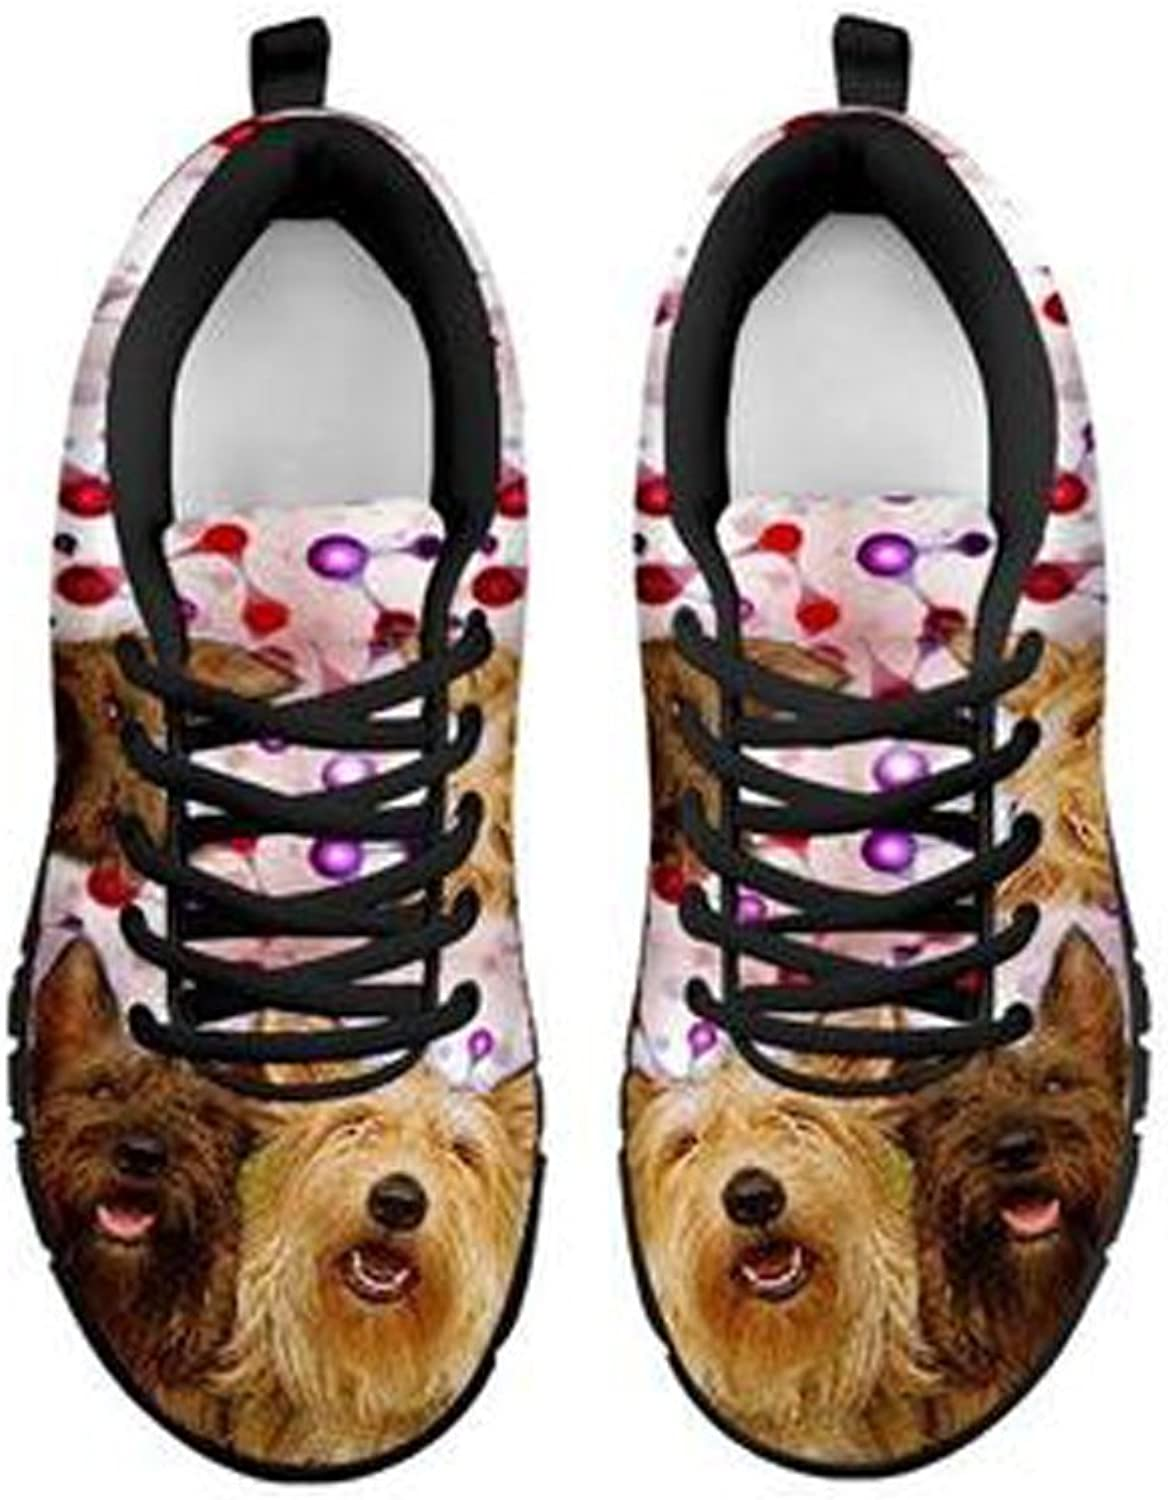 Cute Berger Picard (Picardy Shepherd) Dog Print Women's Casual Sneakers